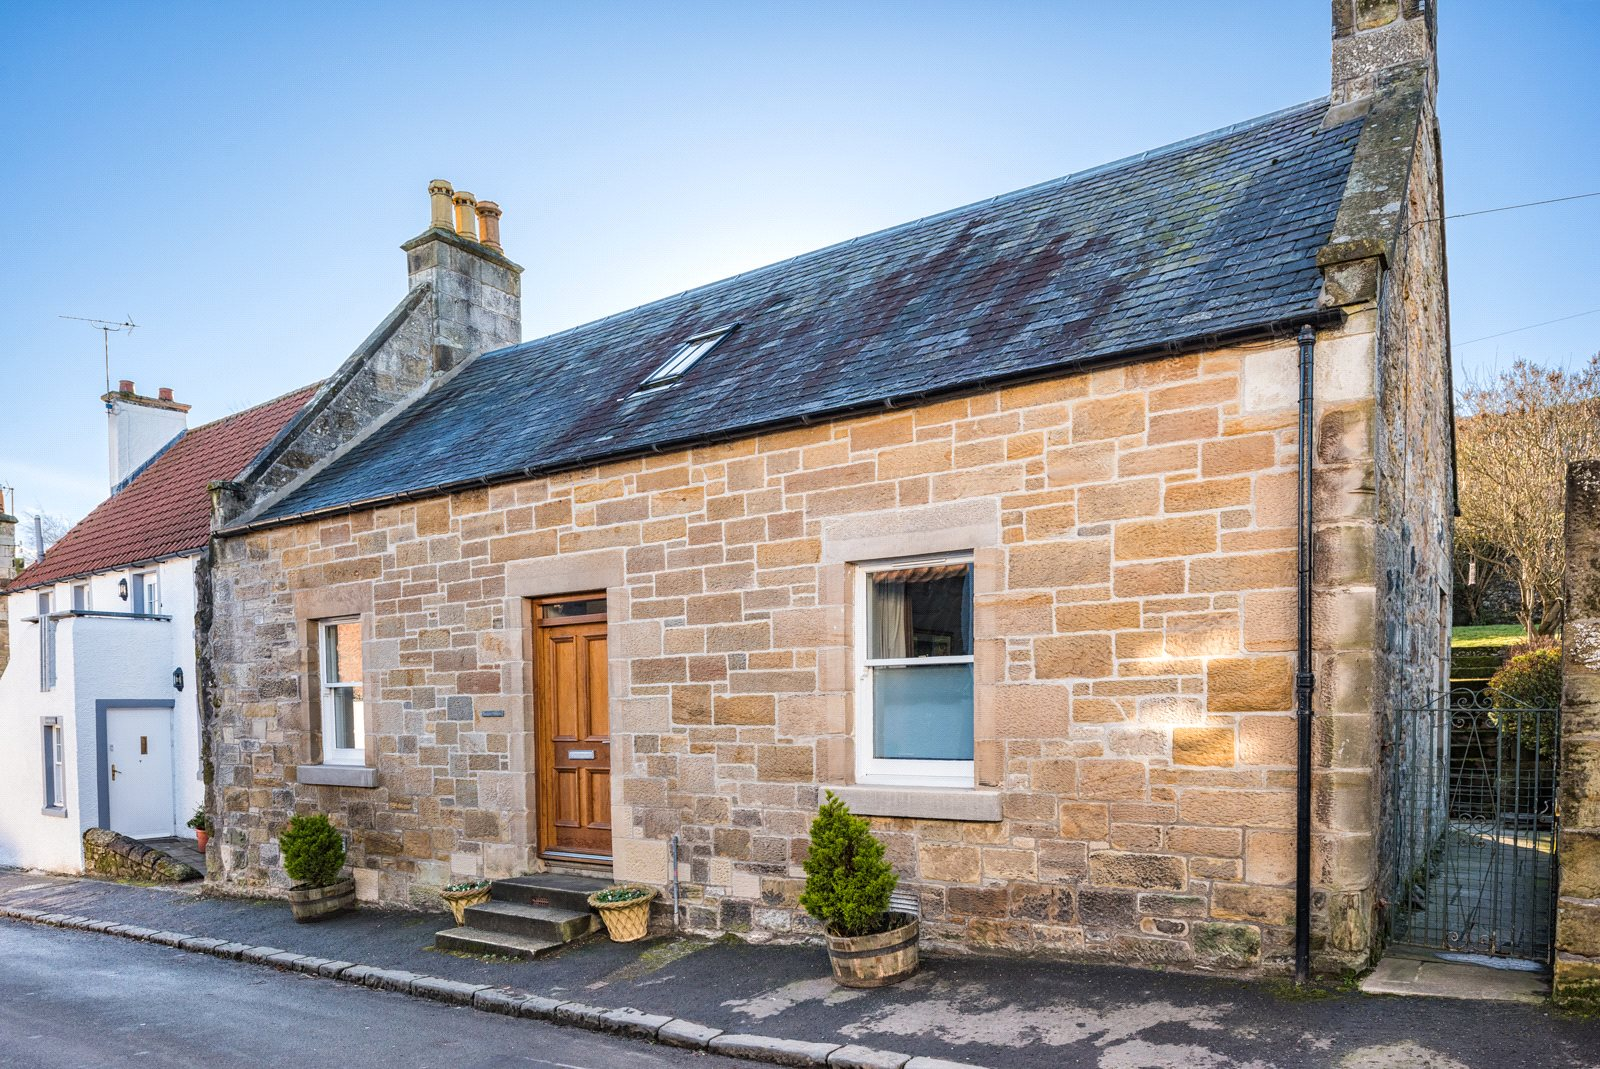 3 Bedrooms Detached House for sale in Stewart Cottage, High Street, Falkland, Cupar, Fife, KY15